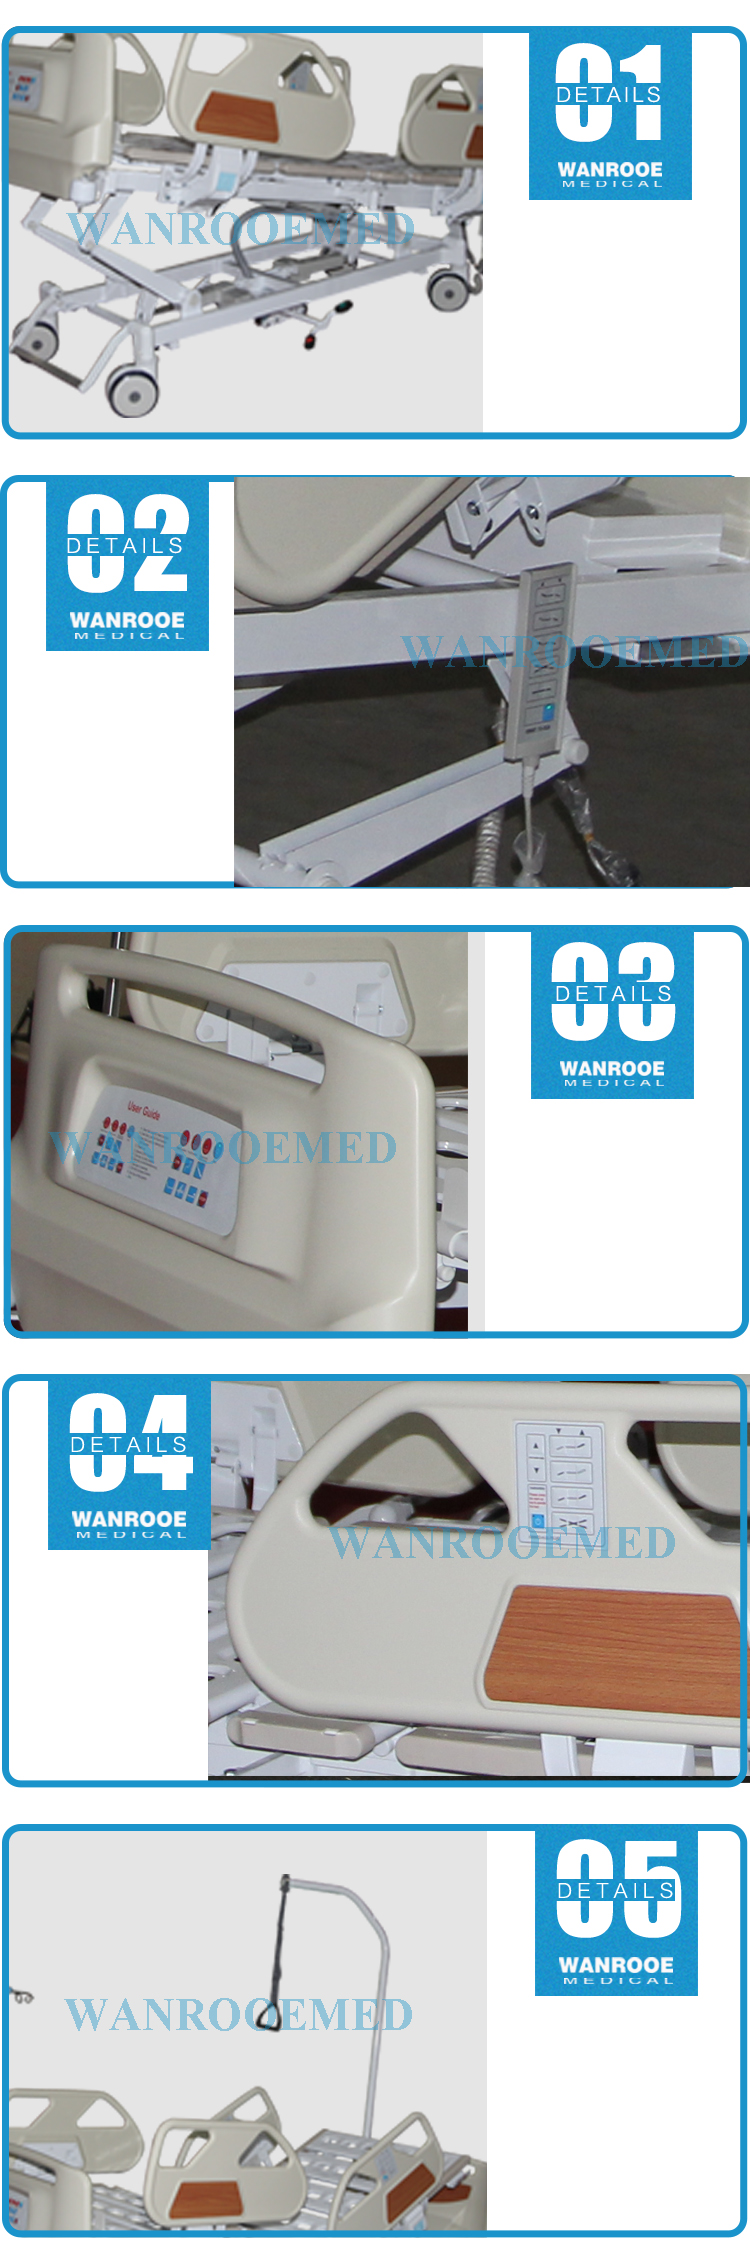 Five Function Hospital Bed, Electric Nursing Bed, Hospital Nursing Bed, Medical Electric Bed, Multi-function Electric Bed